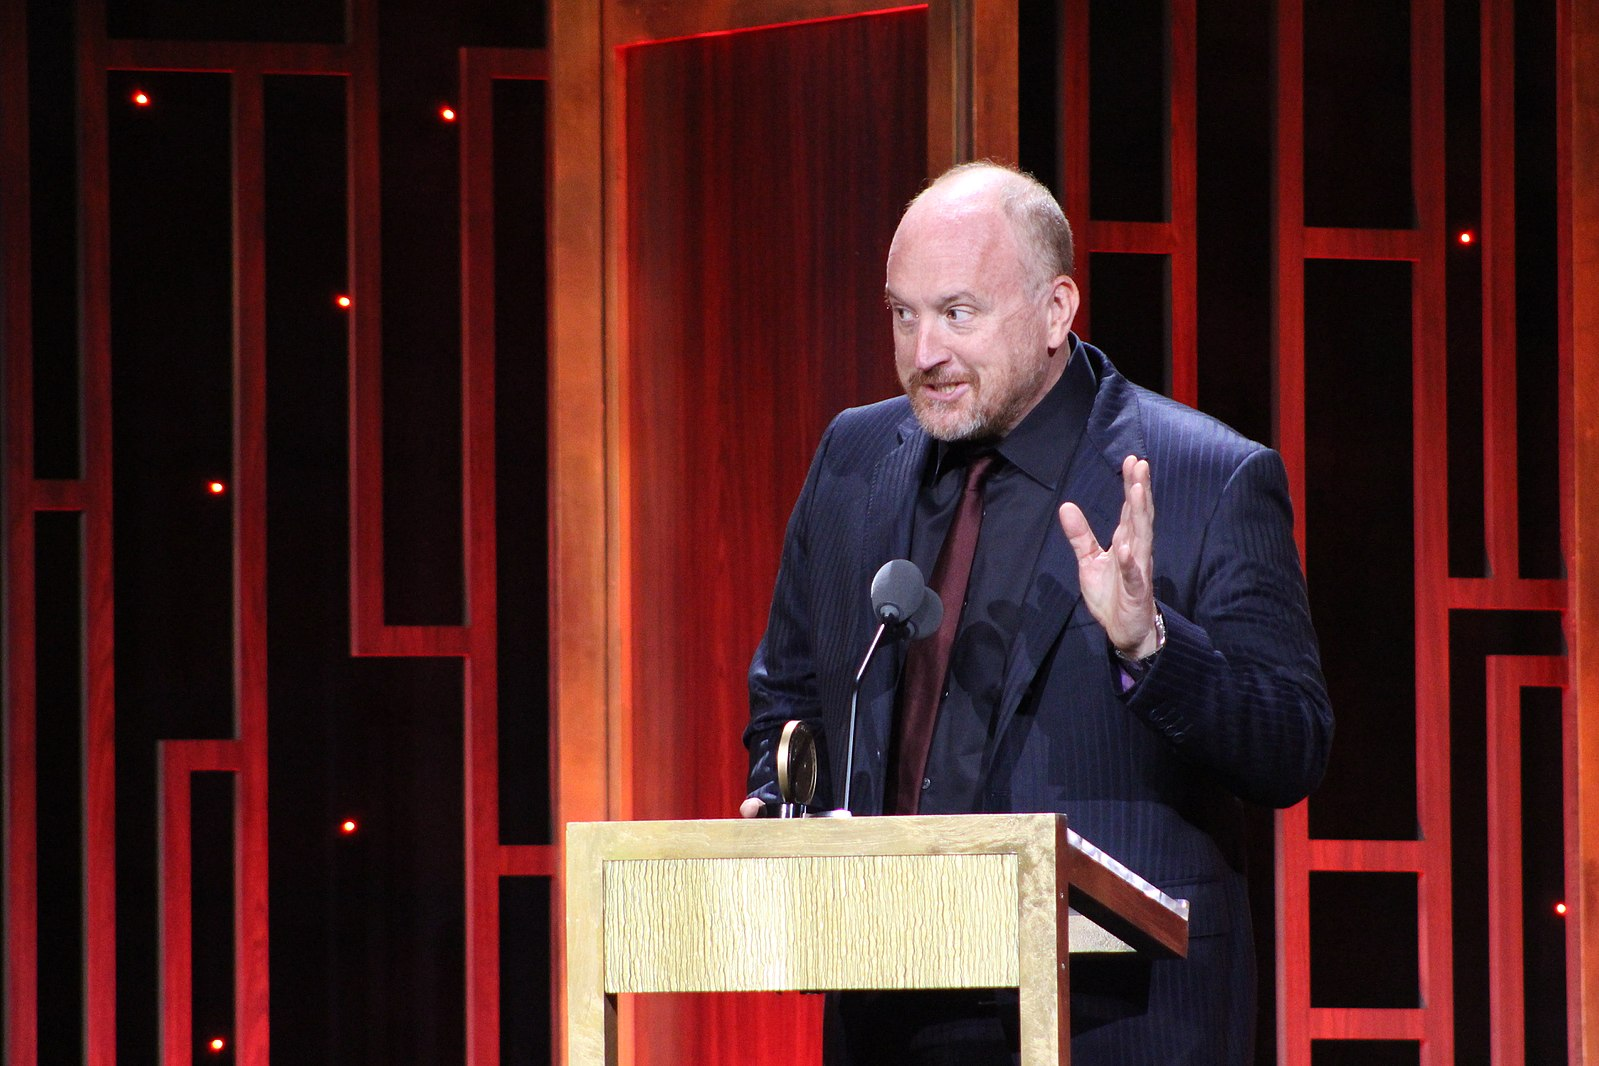 Louis C.K. was accused by five women of taking off his clothes and masturbating in front of them. In a statement, C.K. said